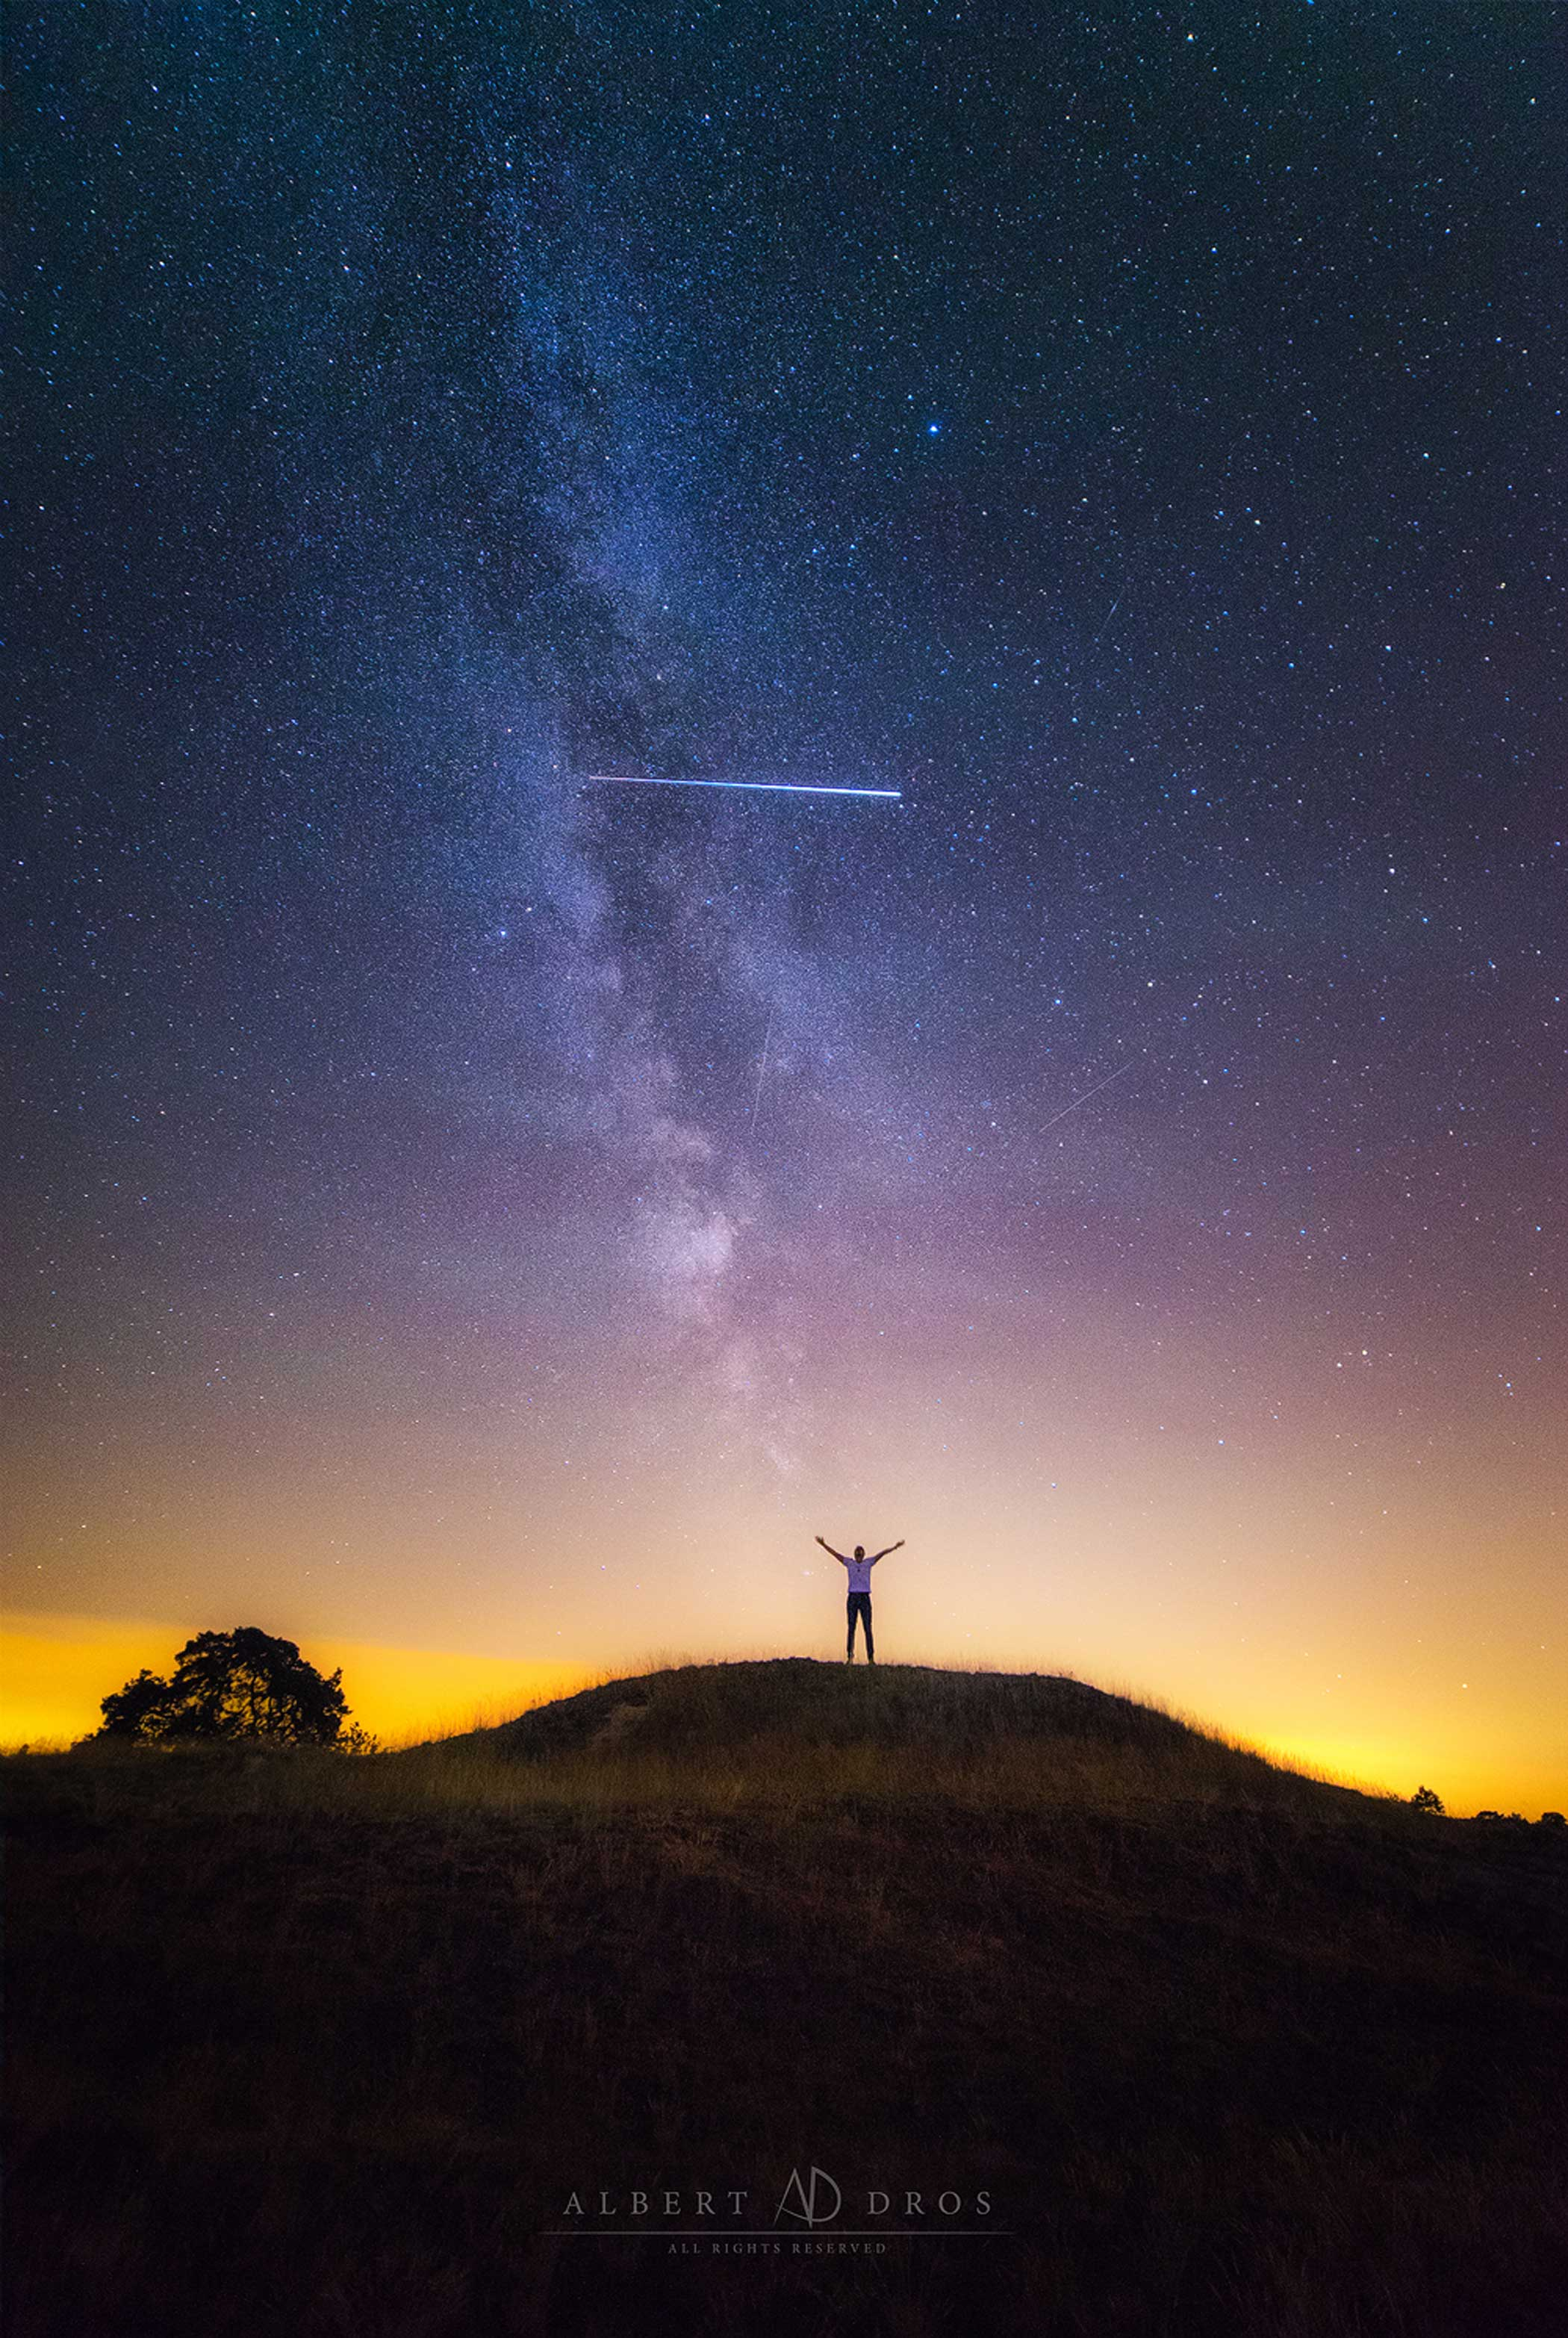 This Guy Got Photobombed by the International Space Station